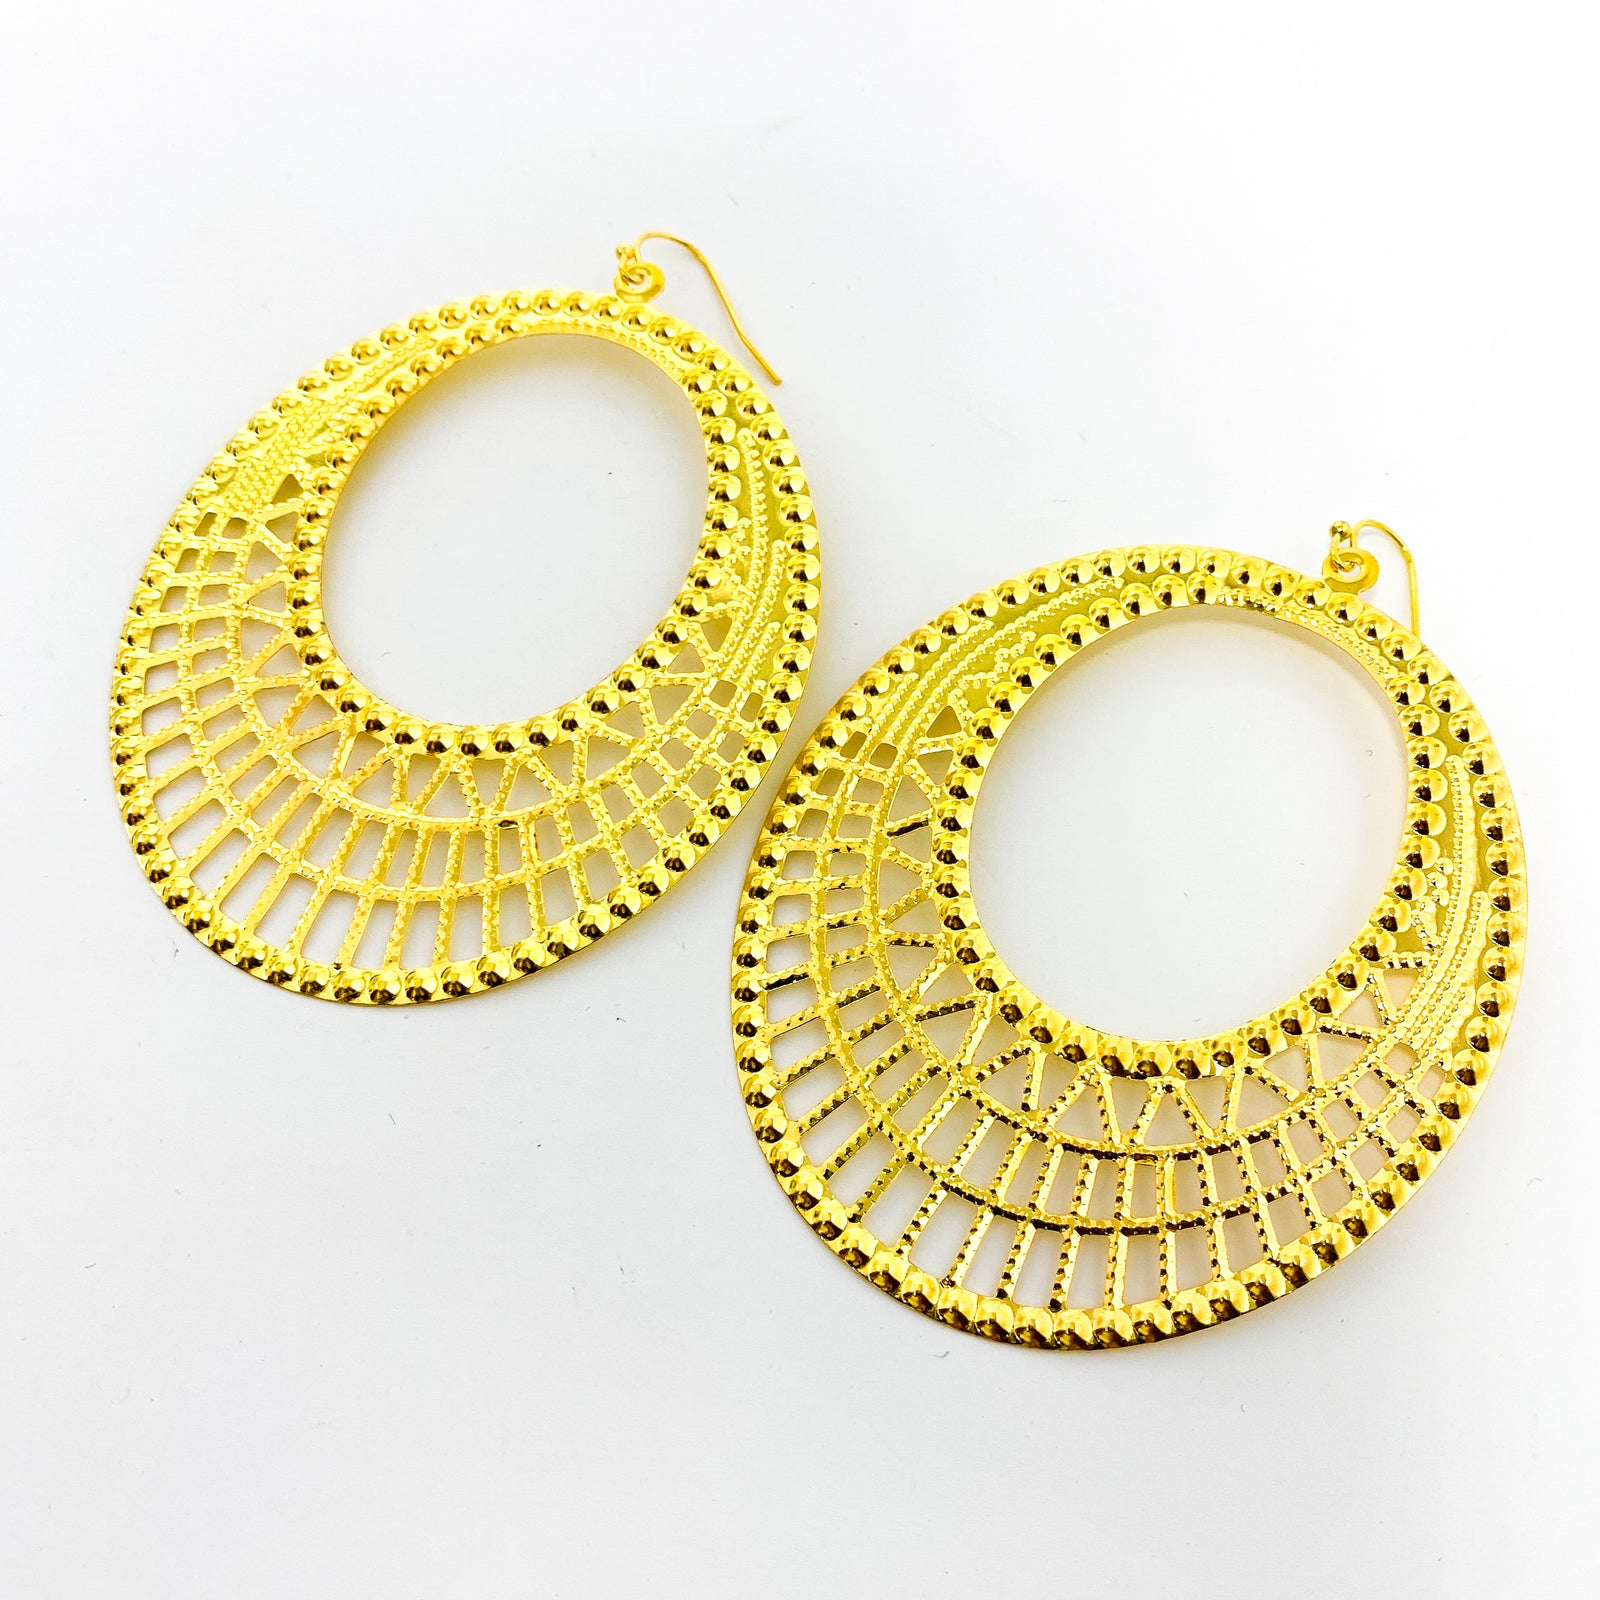 LARGE FILIGREE PATTERN HOOPS | STYLE OPTIONS